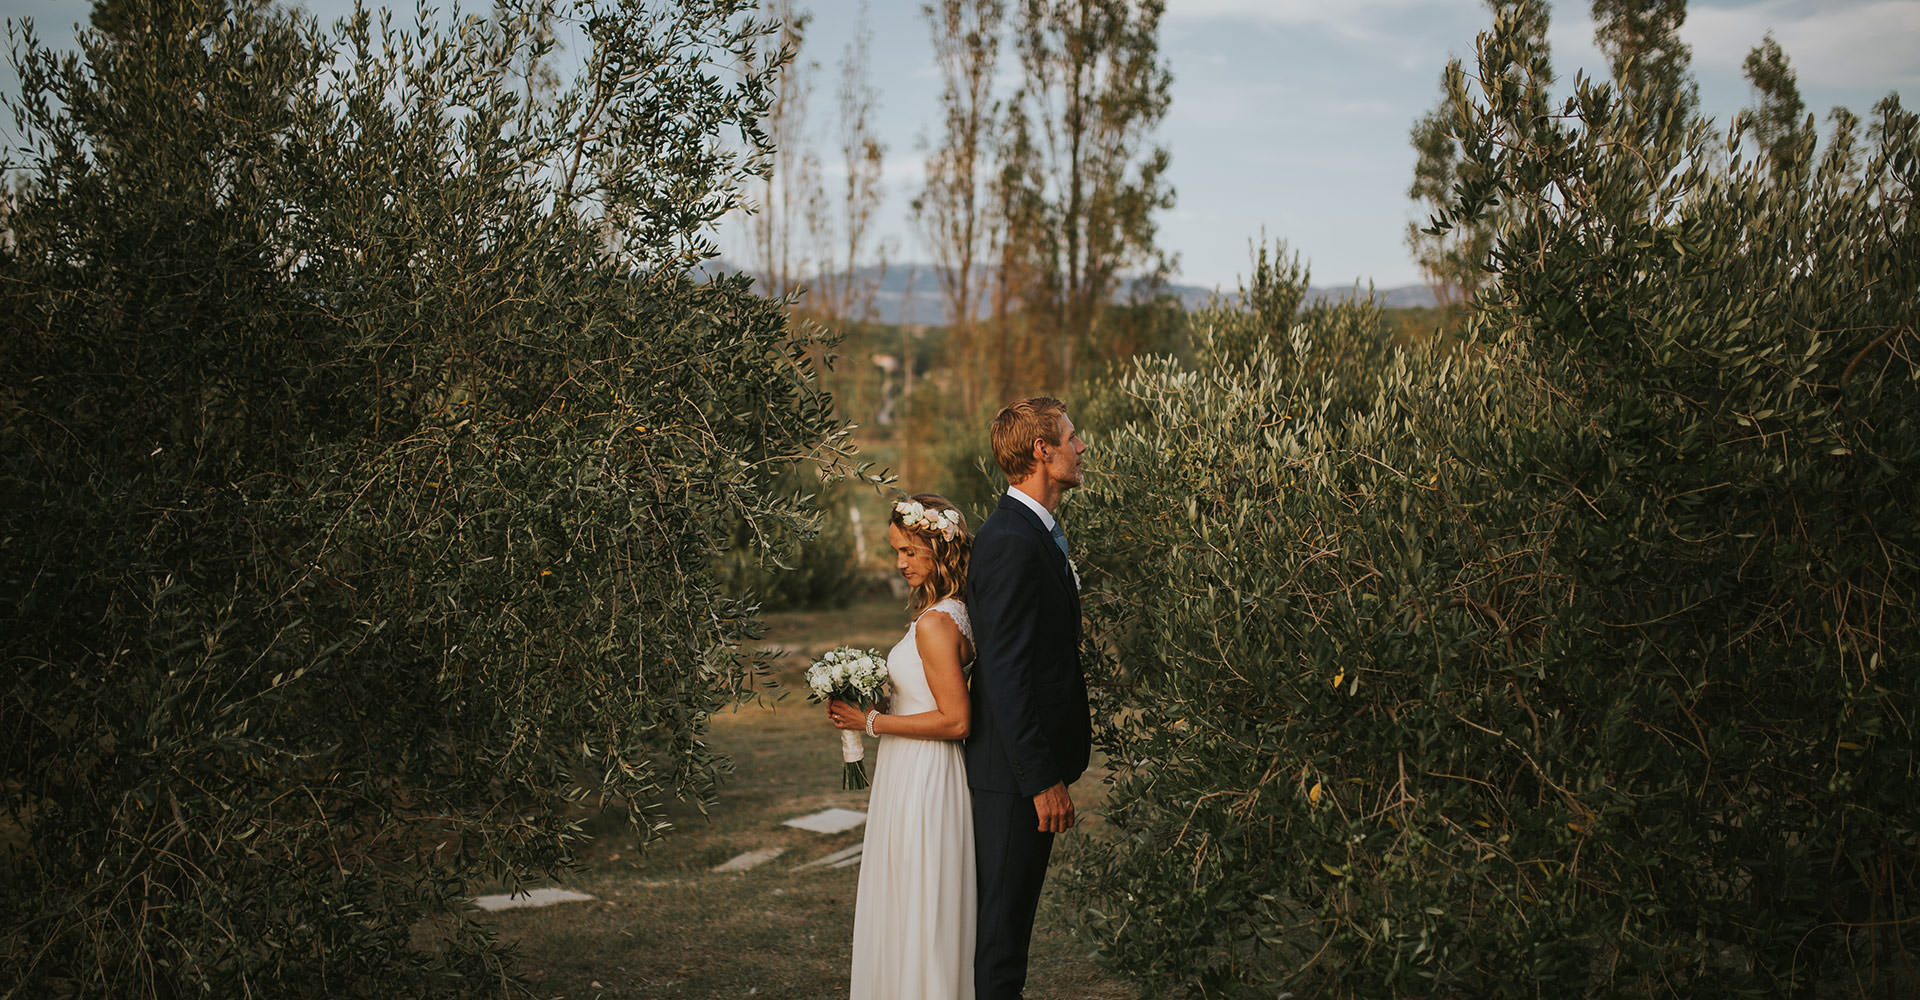 boskinac winery wedding